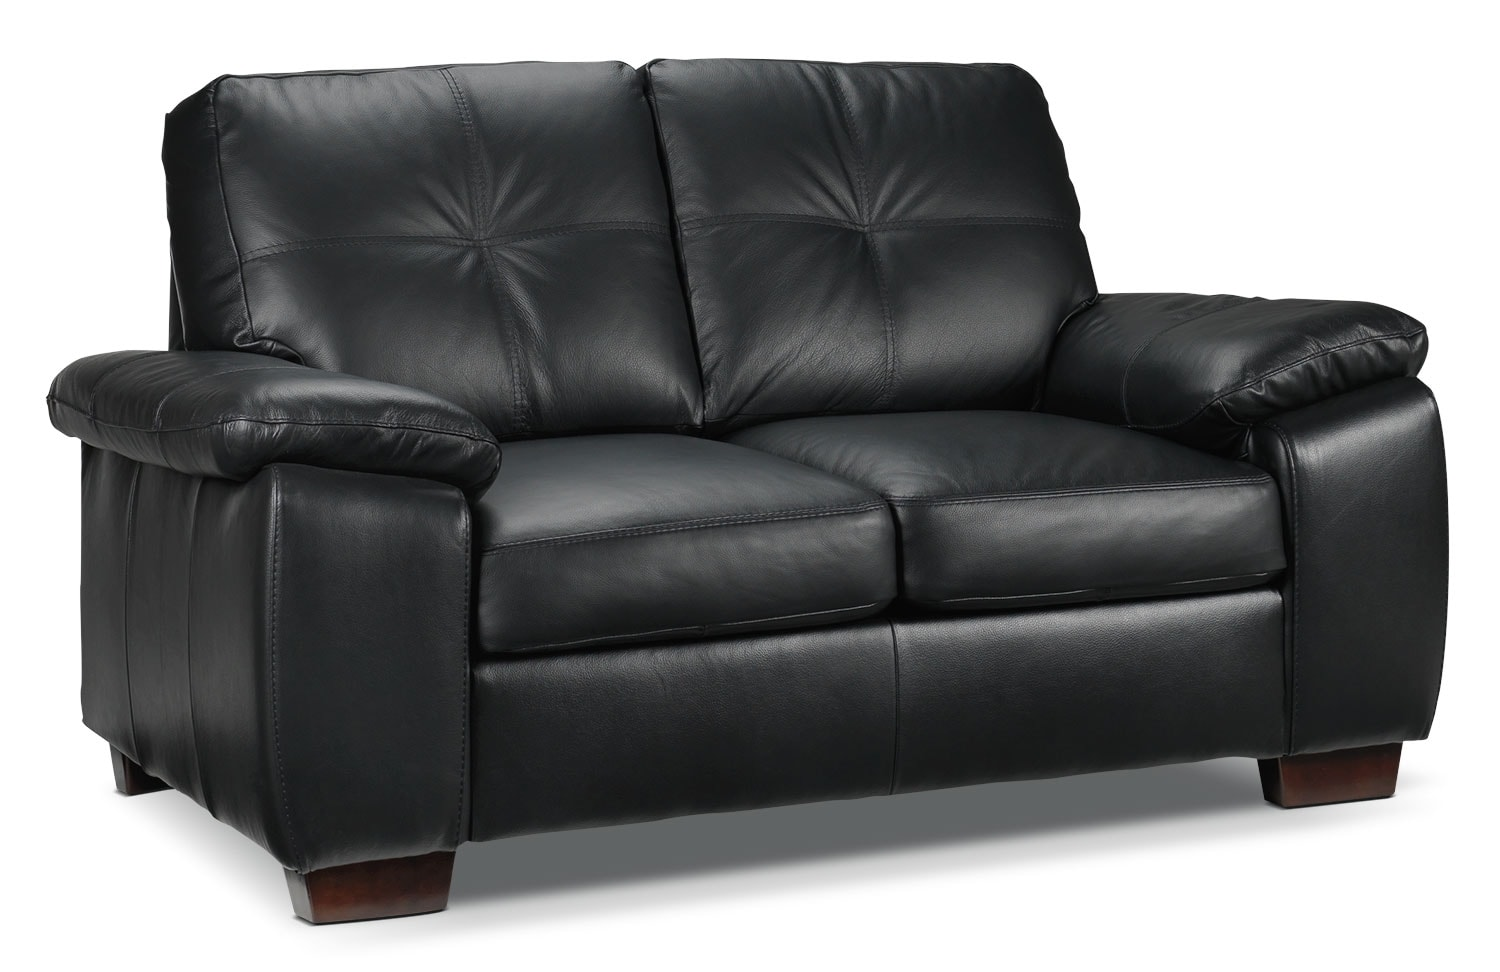 Naples Loveseat - Black